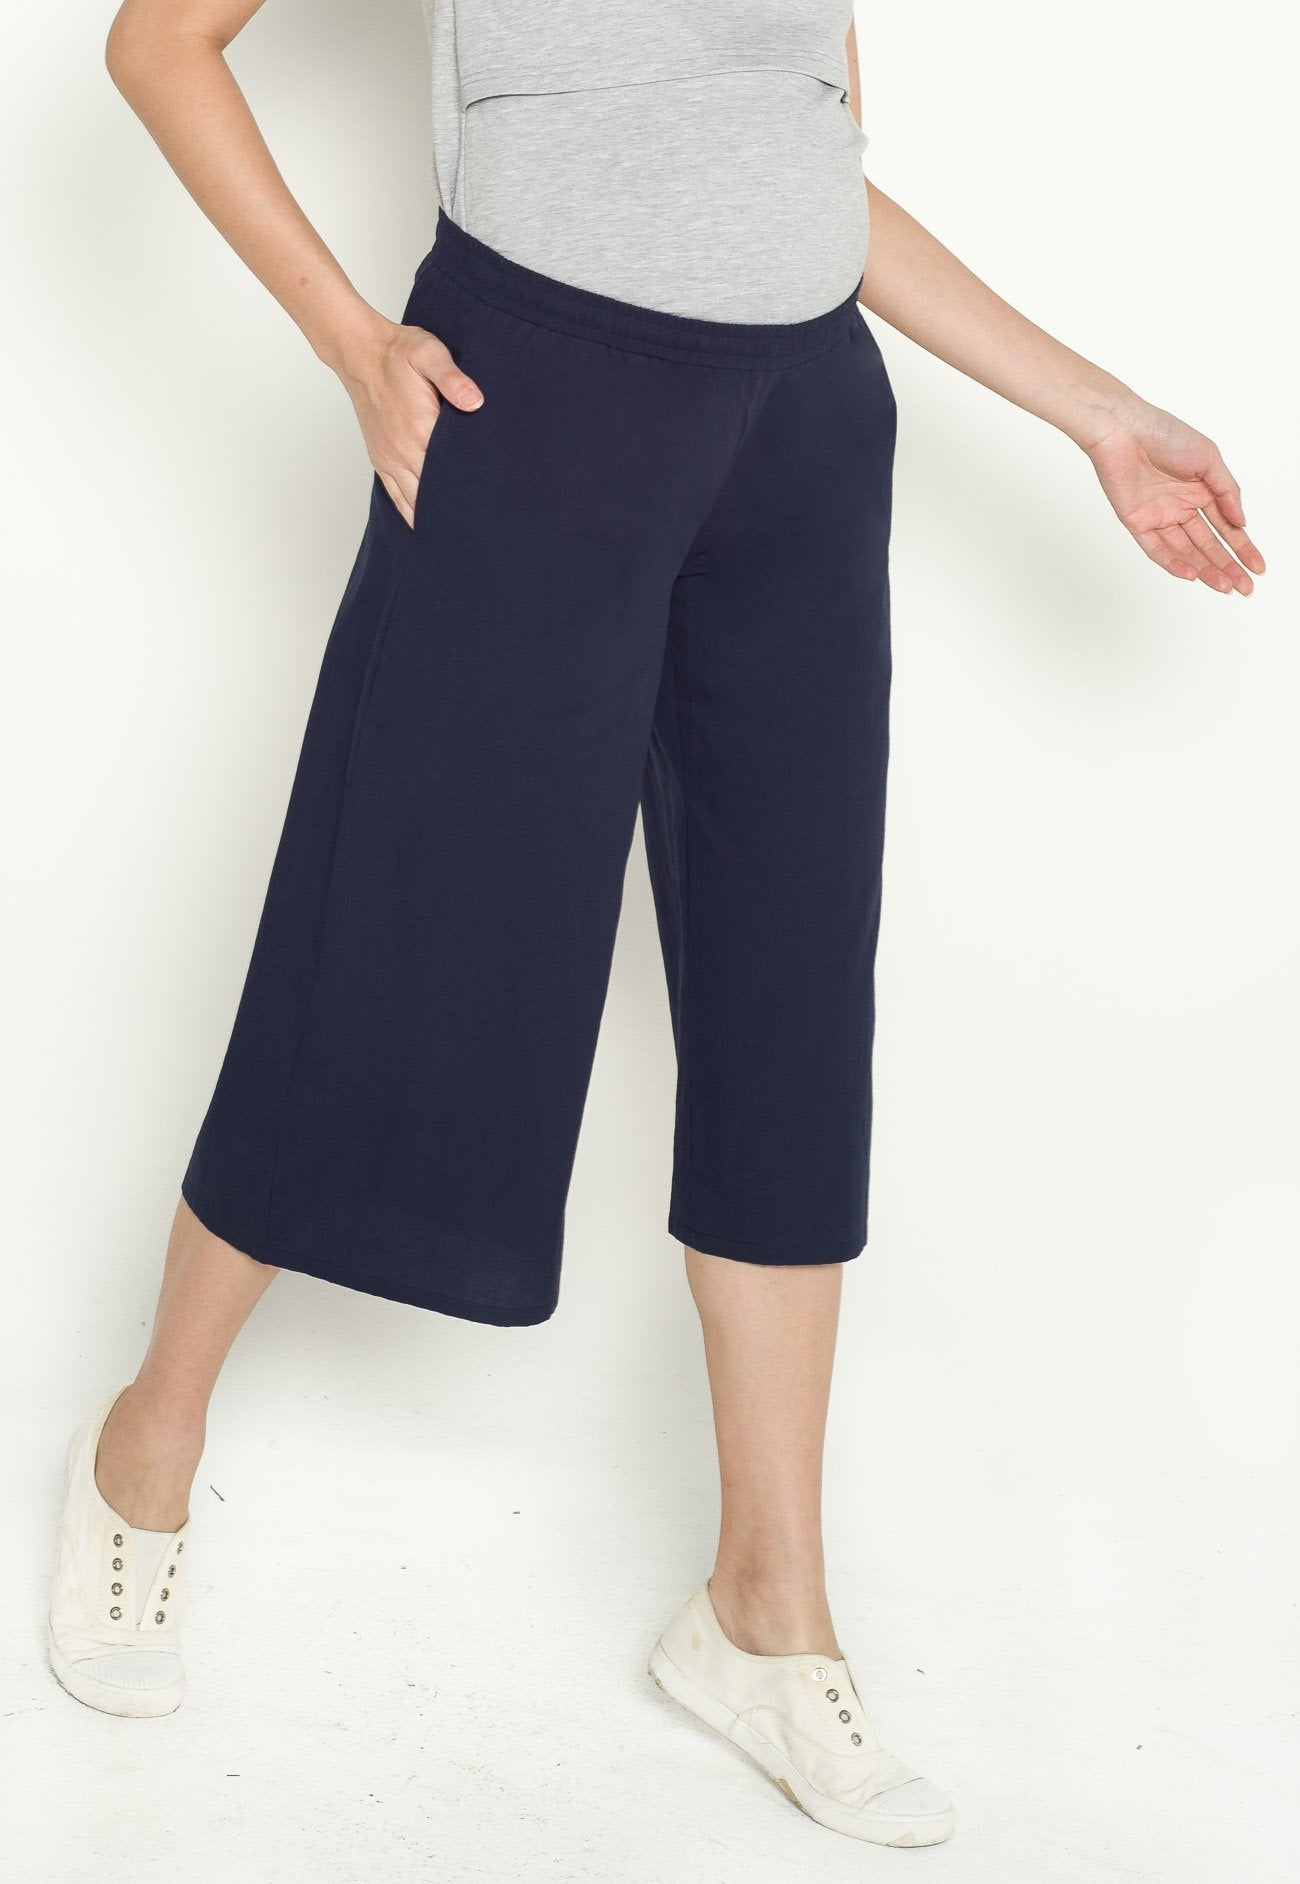 Avery Maternity Culottes in Navy  by Jump Eat Cry - Maternity and nursing wear